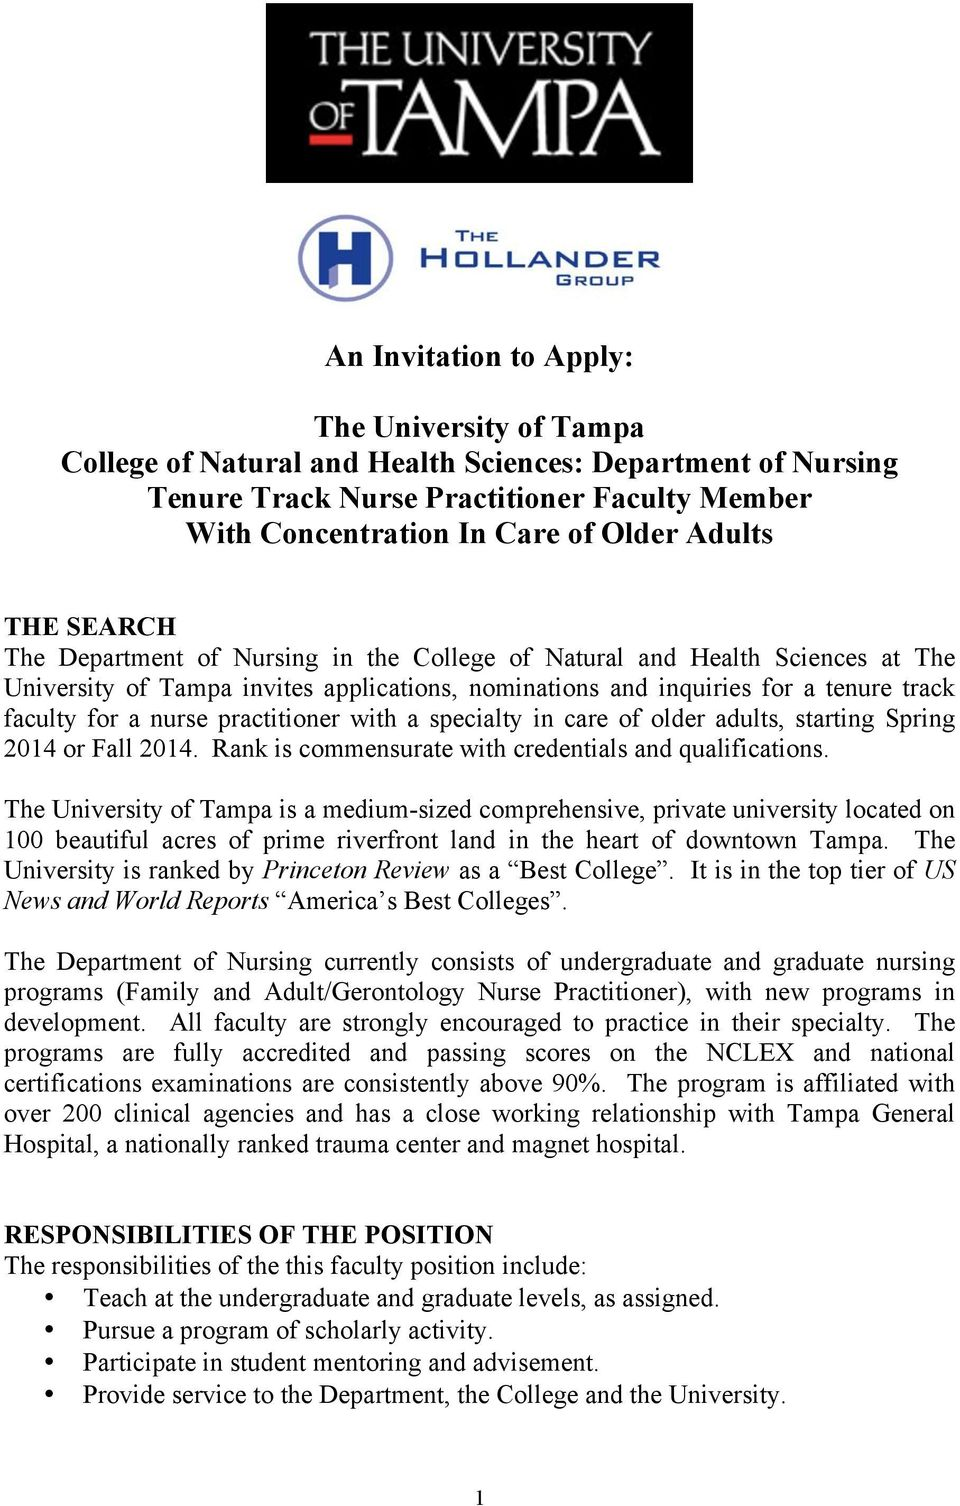 practitioner with a specialty in care of older adults, starting Spring 2014 or Fall 2014. Rank is commensurate with credentials and qualifications.